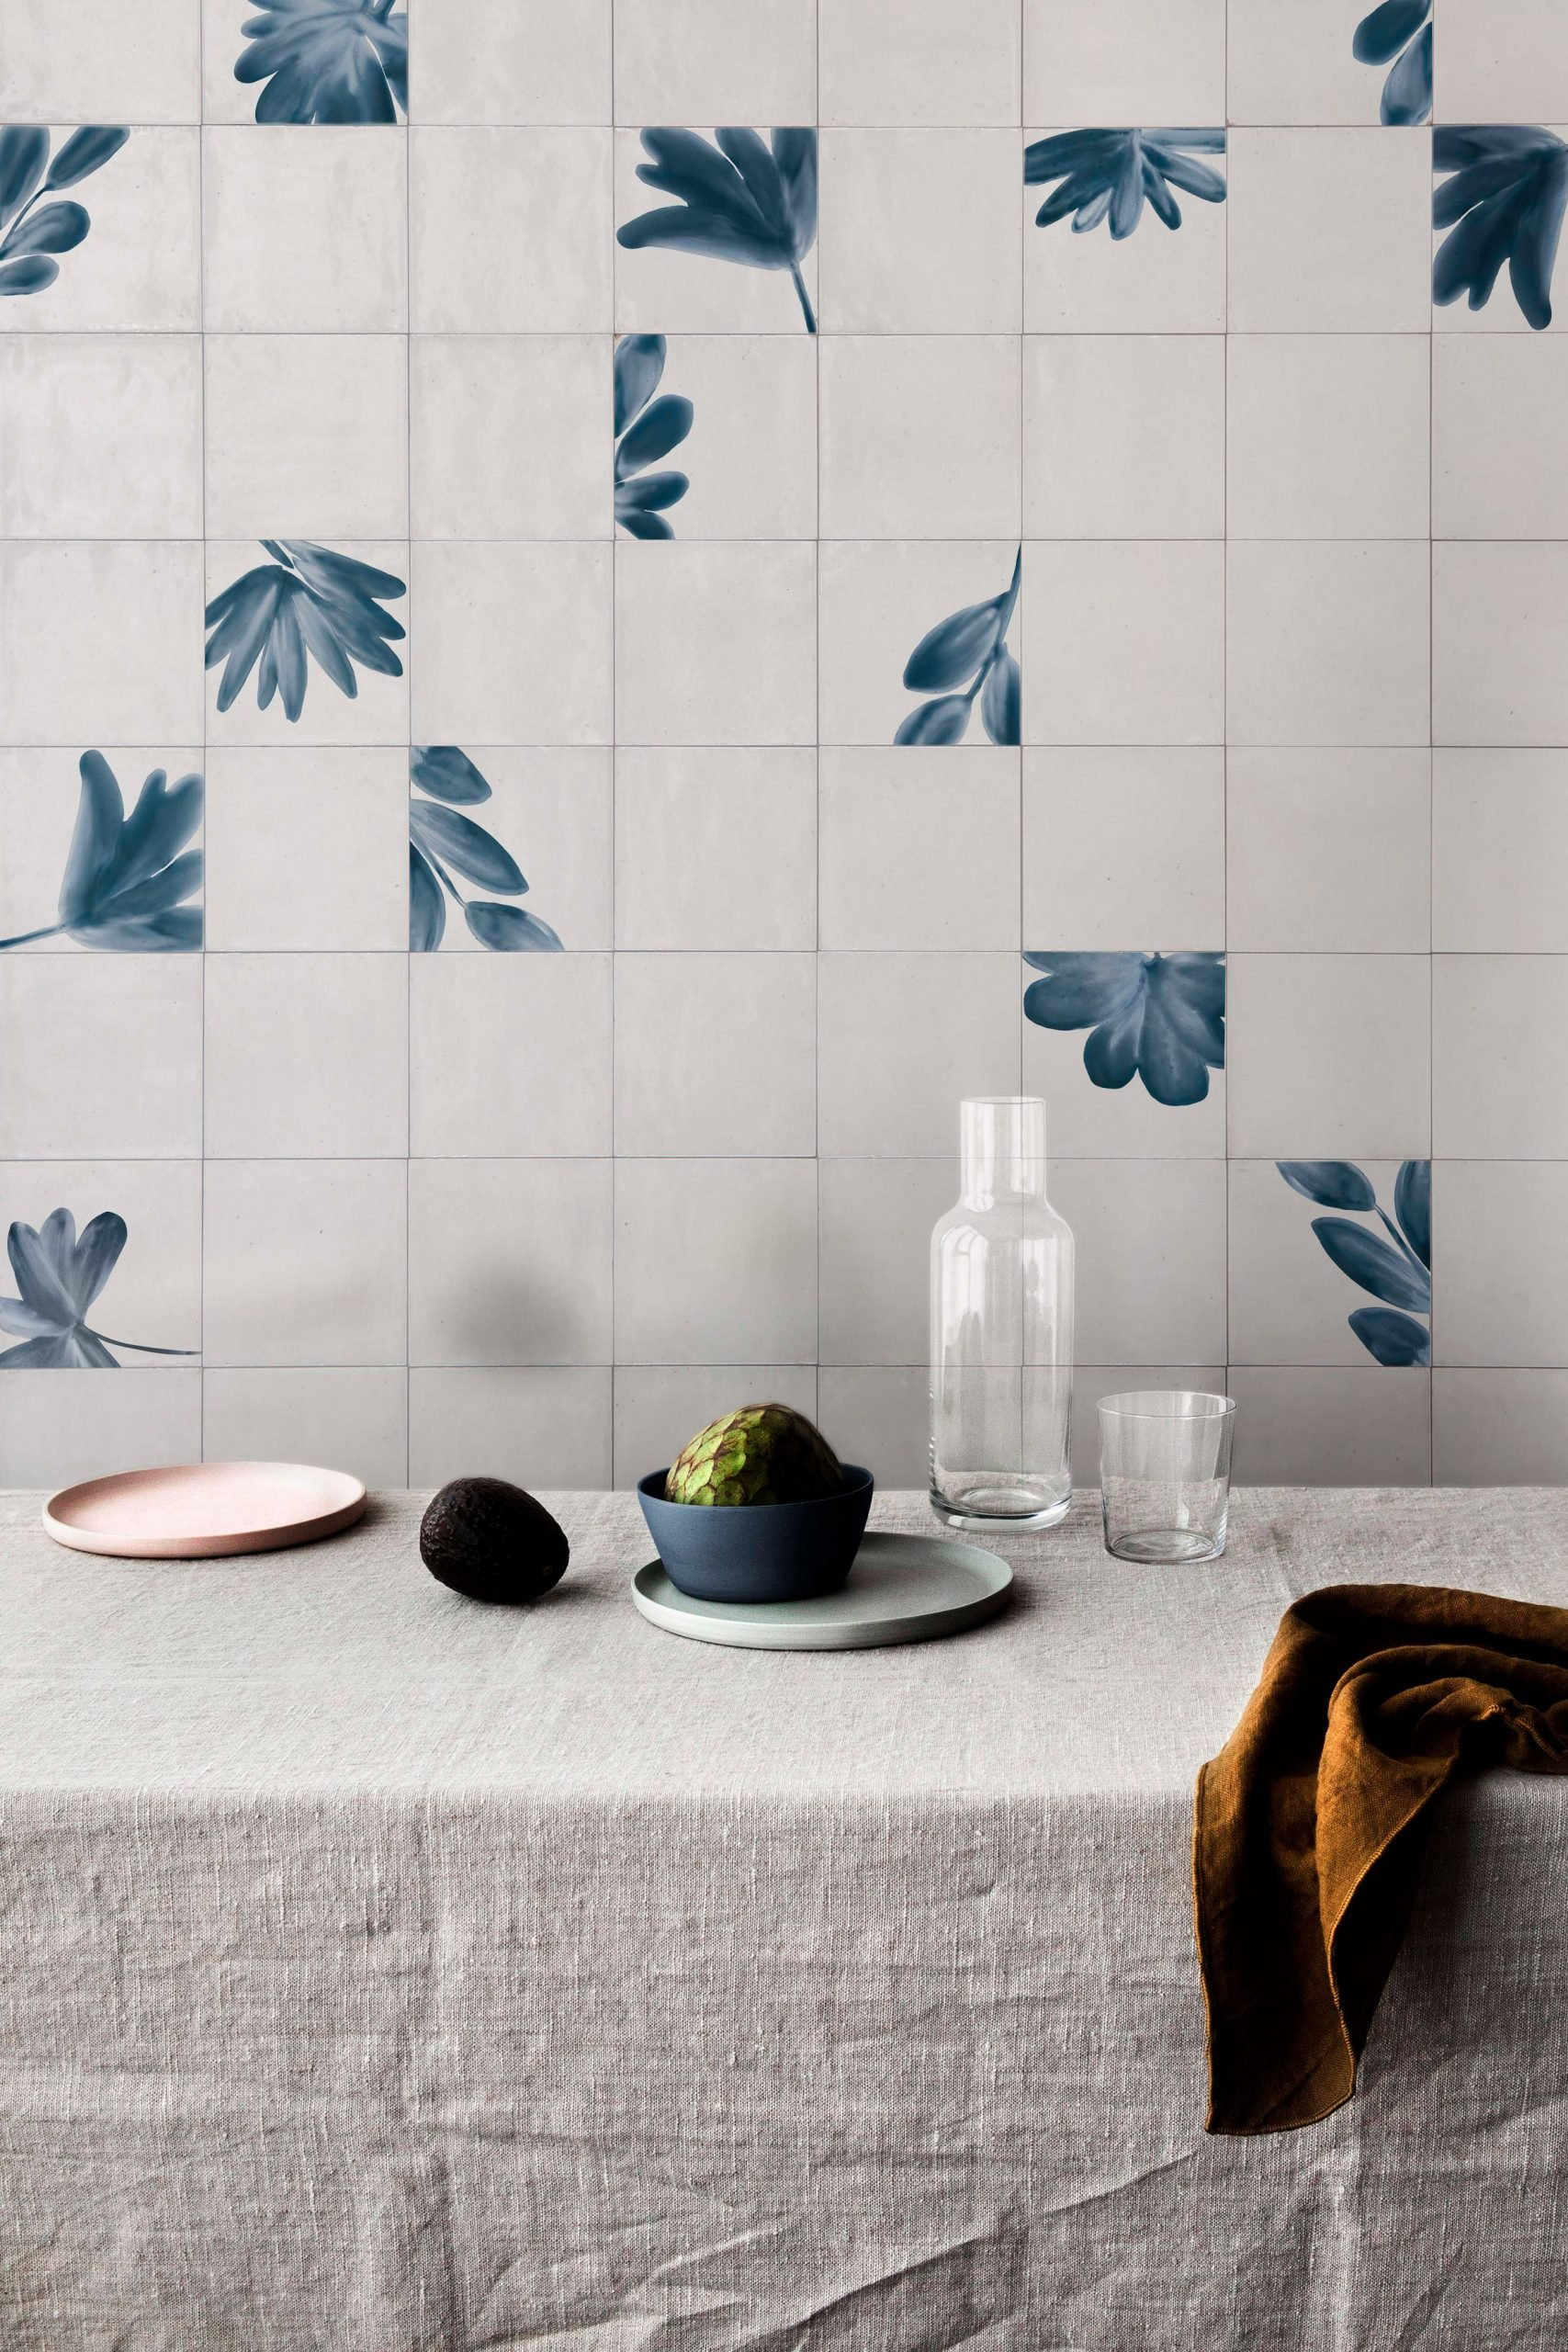 The Crogiolo Rice collection includes tiles with nature-inspired motifs in blue